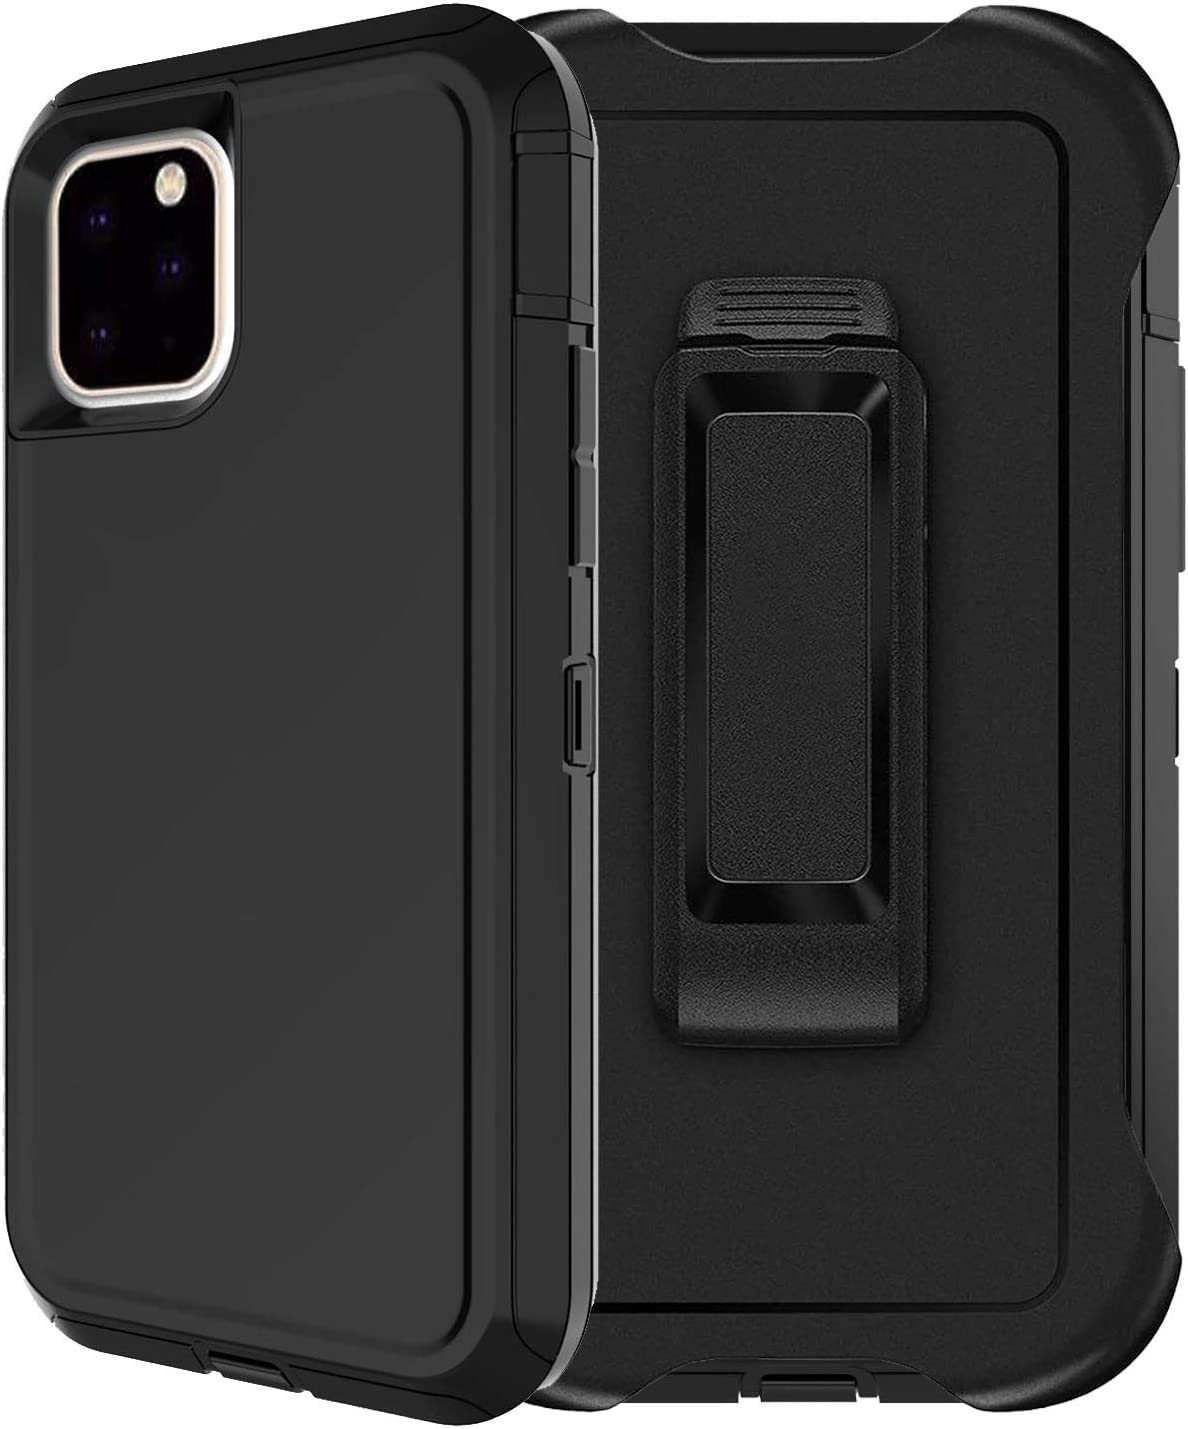 Aimoll-88 for iPhone 11 Pro Case, with [Belt Clip/Kickstand] [Built-in Screen Protector] 4 in 1 Heavy Duty Shockproof Anti-Scratch Cover for iPhone 11 Pro (5.8